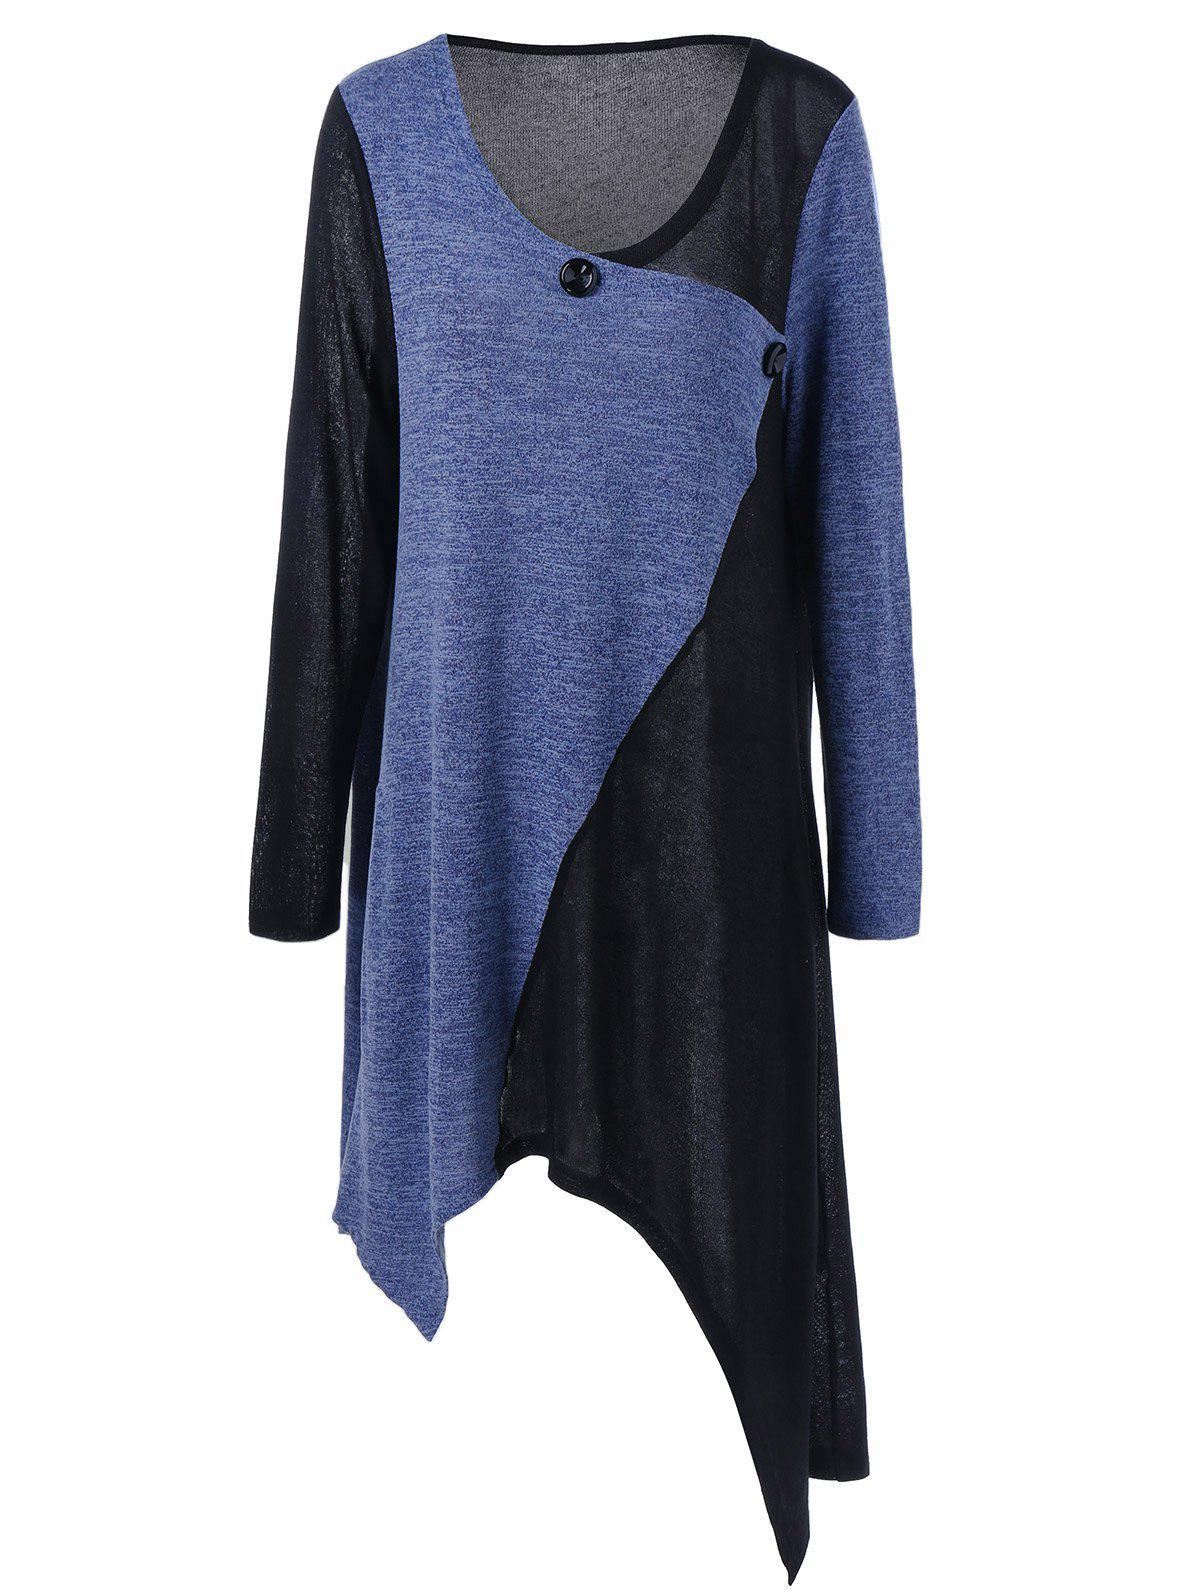 Plus Size Tunic Asymmetric T-Shirt - BLACK/PURPLE XL